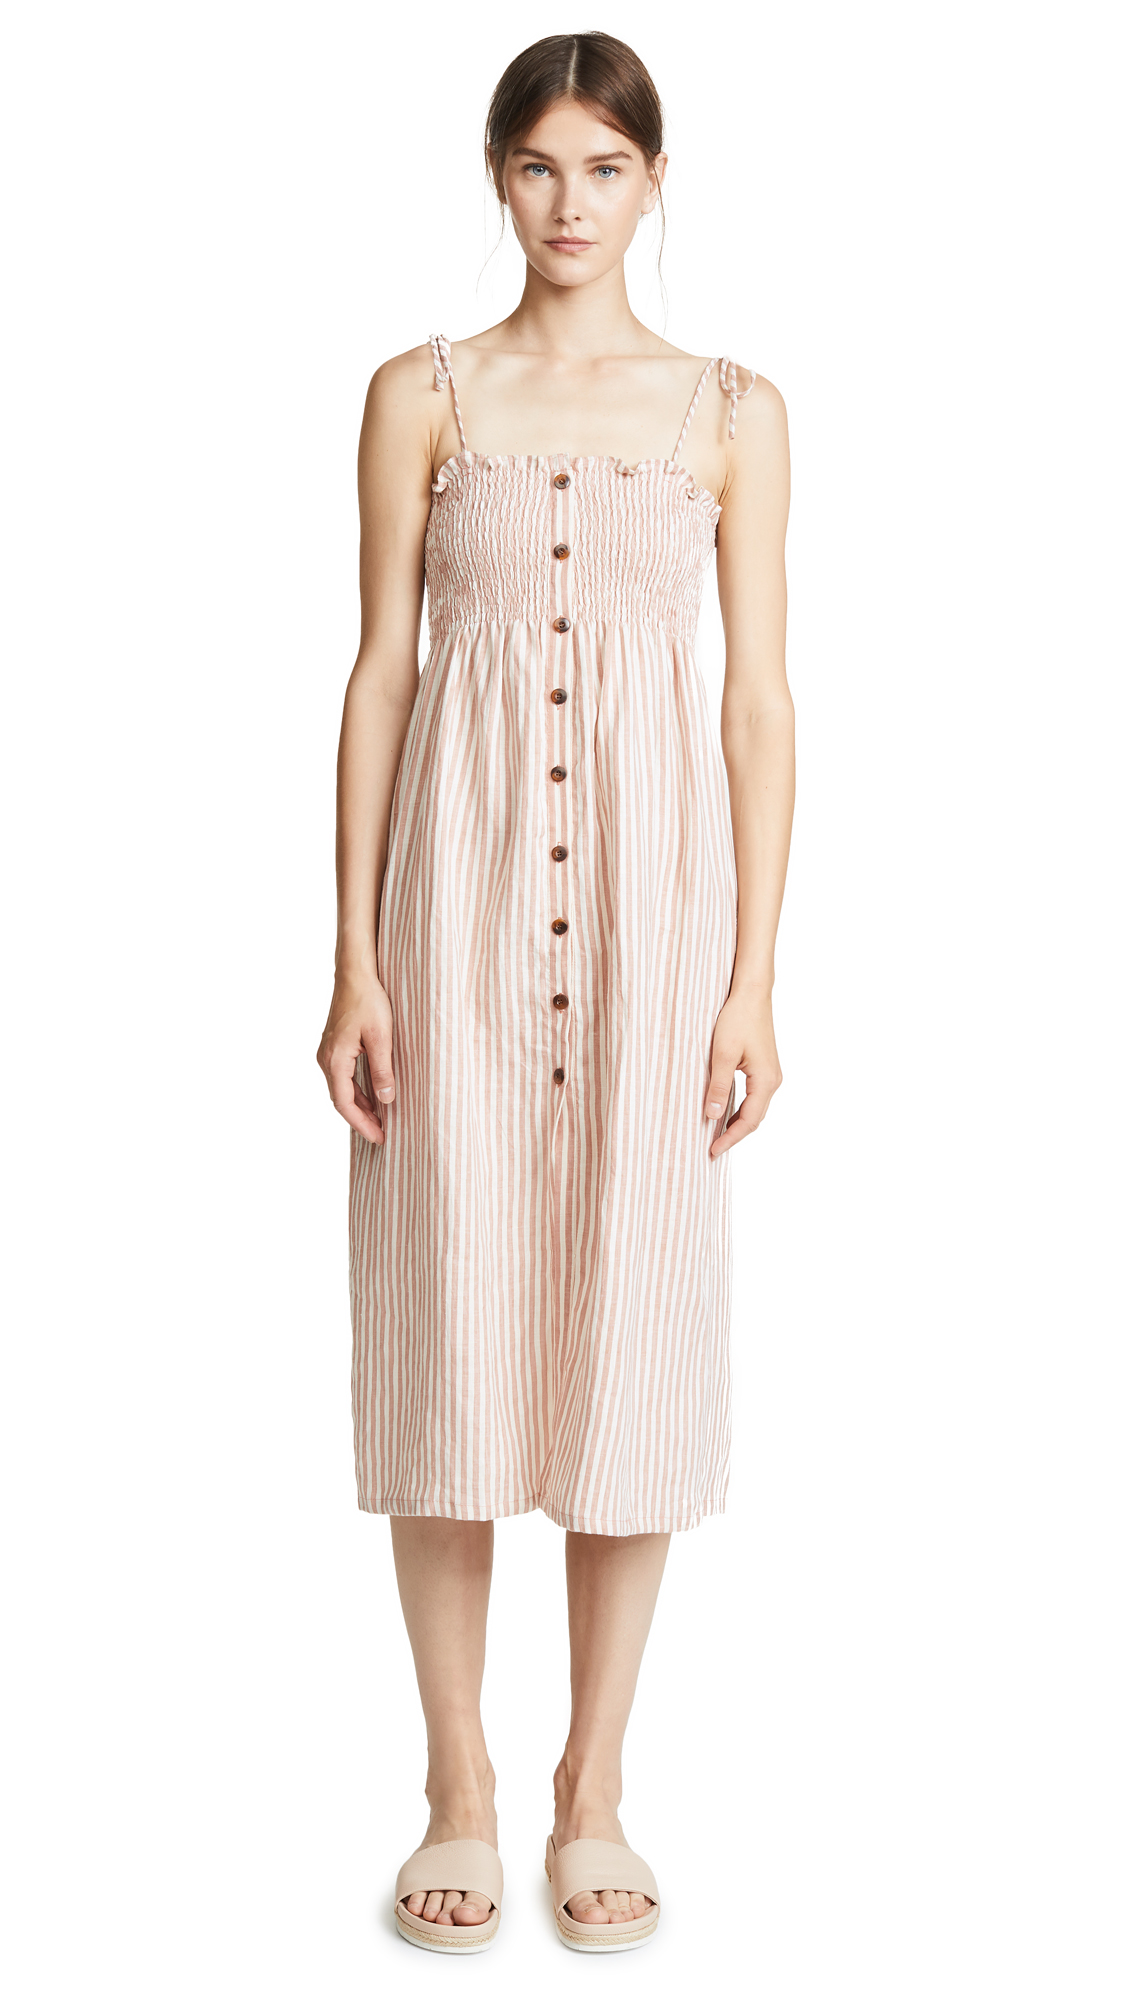 FAITHFULL THE BRAND Suki Midi Dress